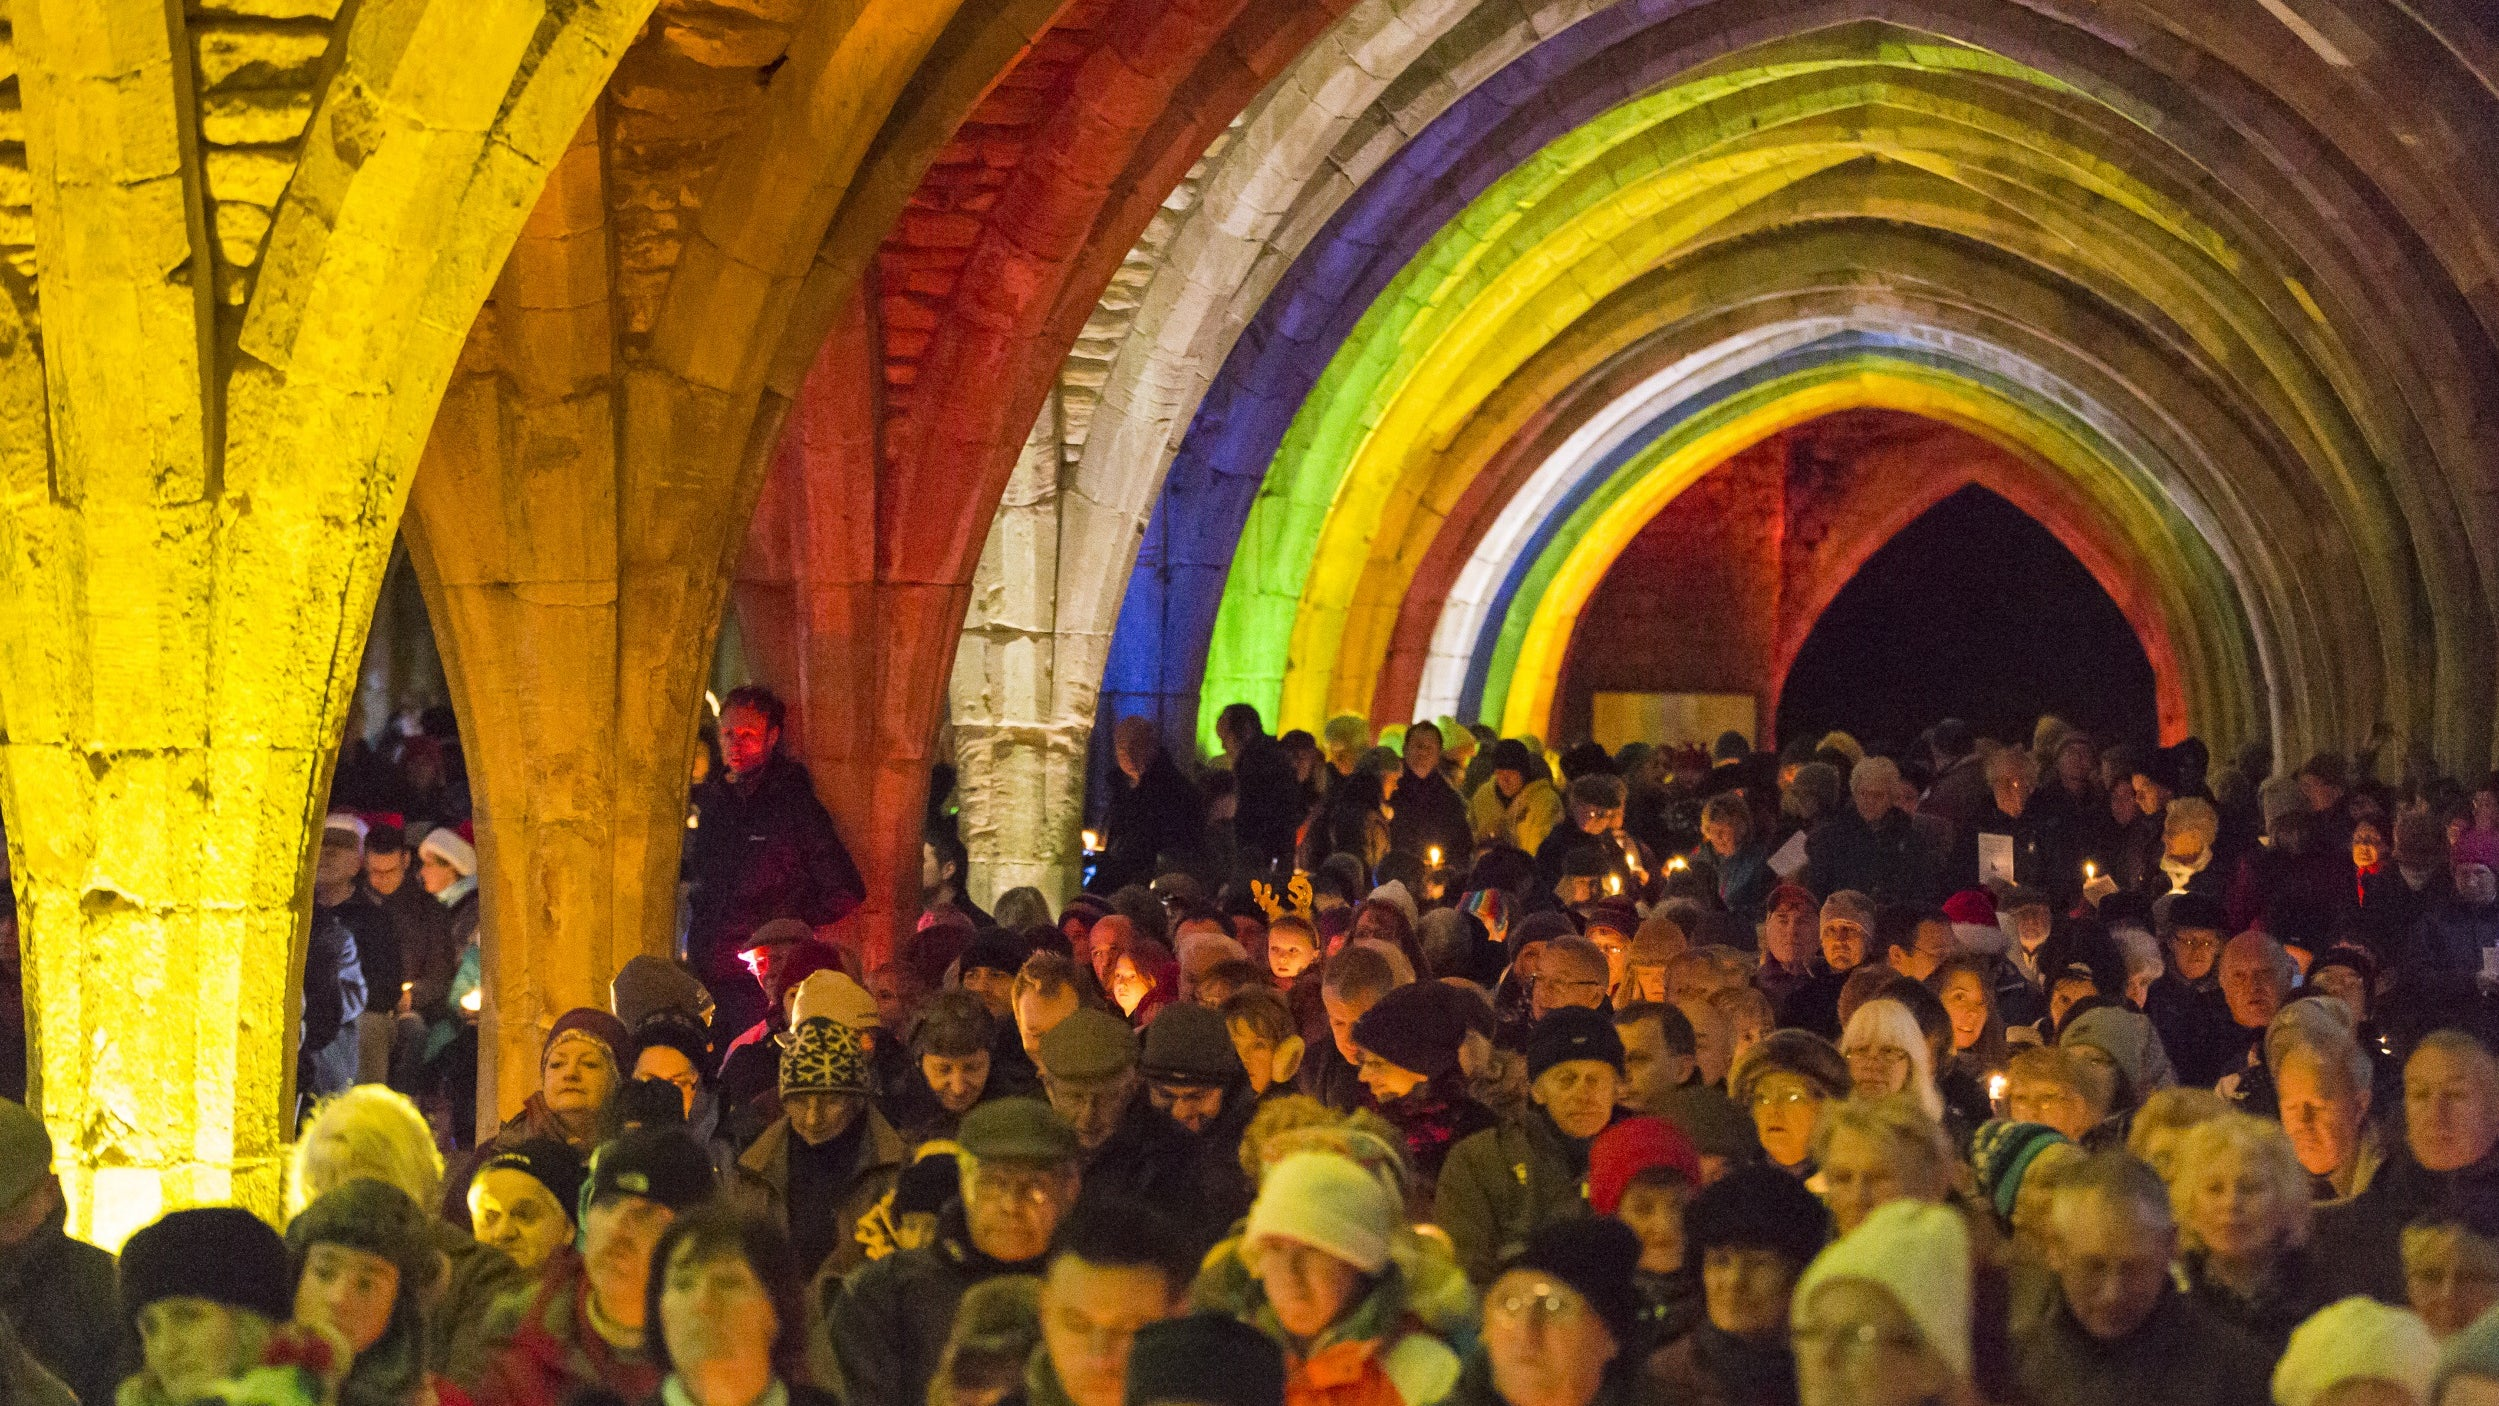 Crowds gather to sing carols at Fountains Abbey